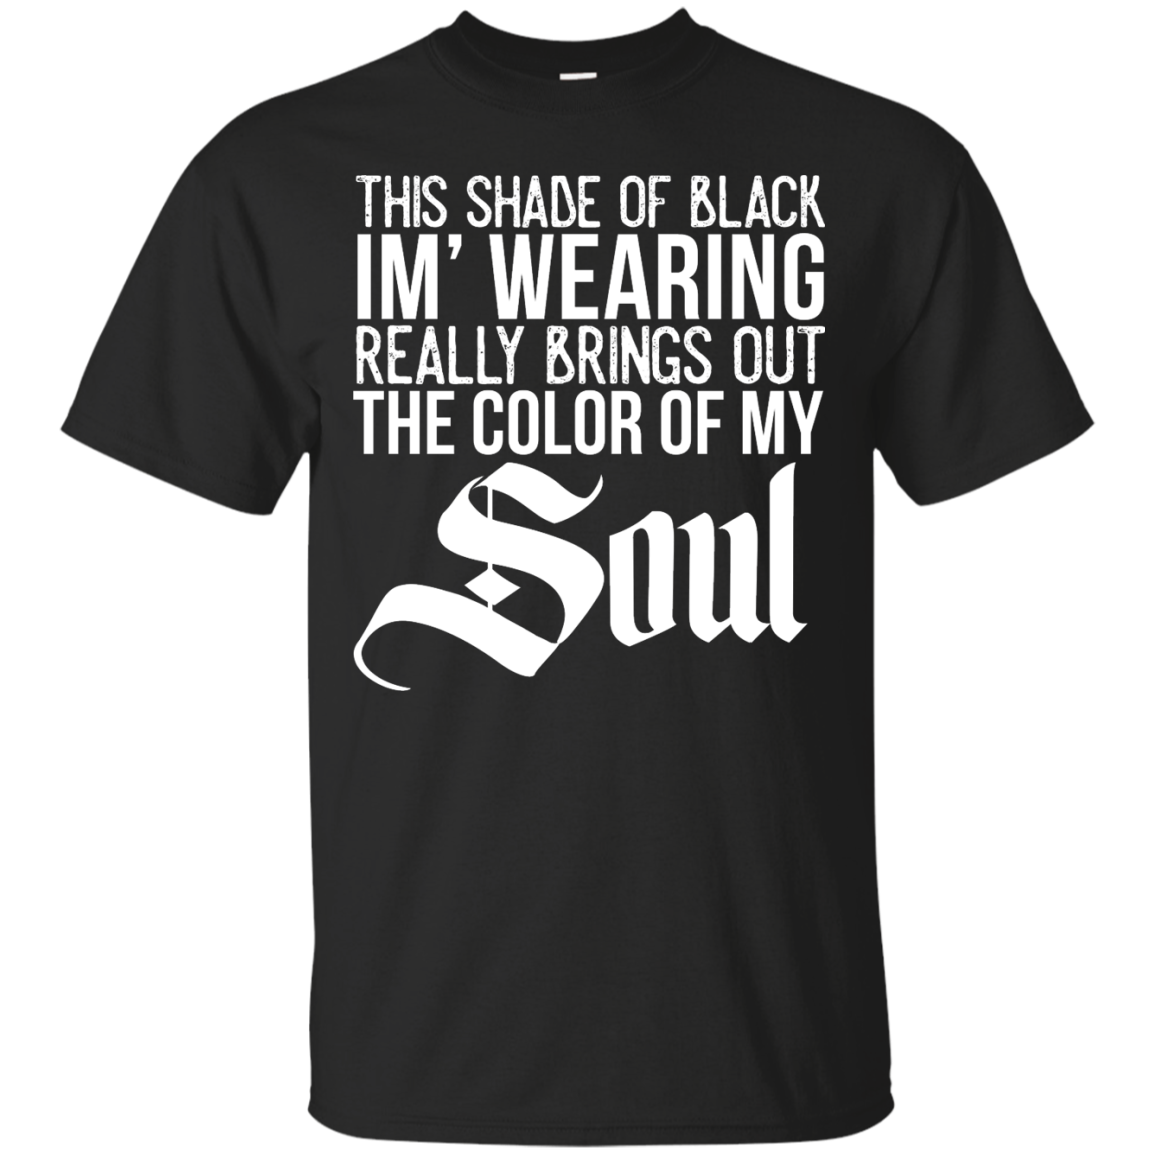 "Jake Custom Apparel Steampunk T Shirt ""THE SHADE OF BLACK I'M WEARING REALLY BRINGS OUT THE COLOR OF MY SOUL"" T-Shirt and Hoodie."